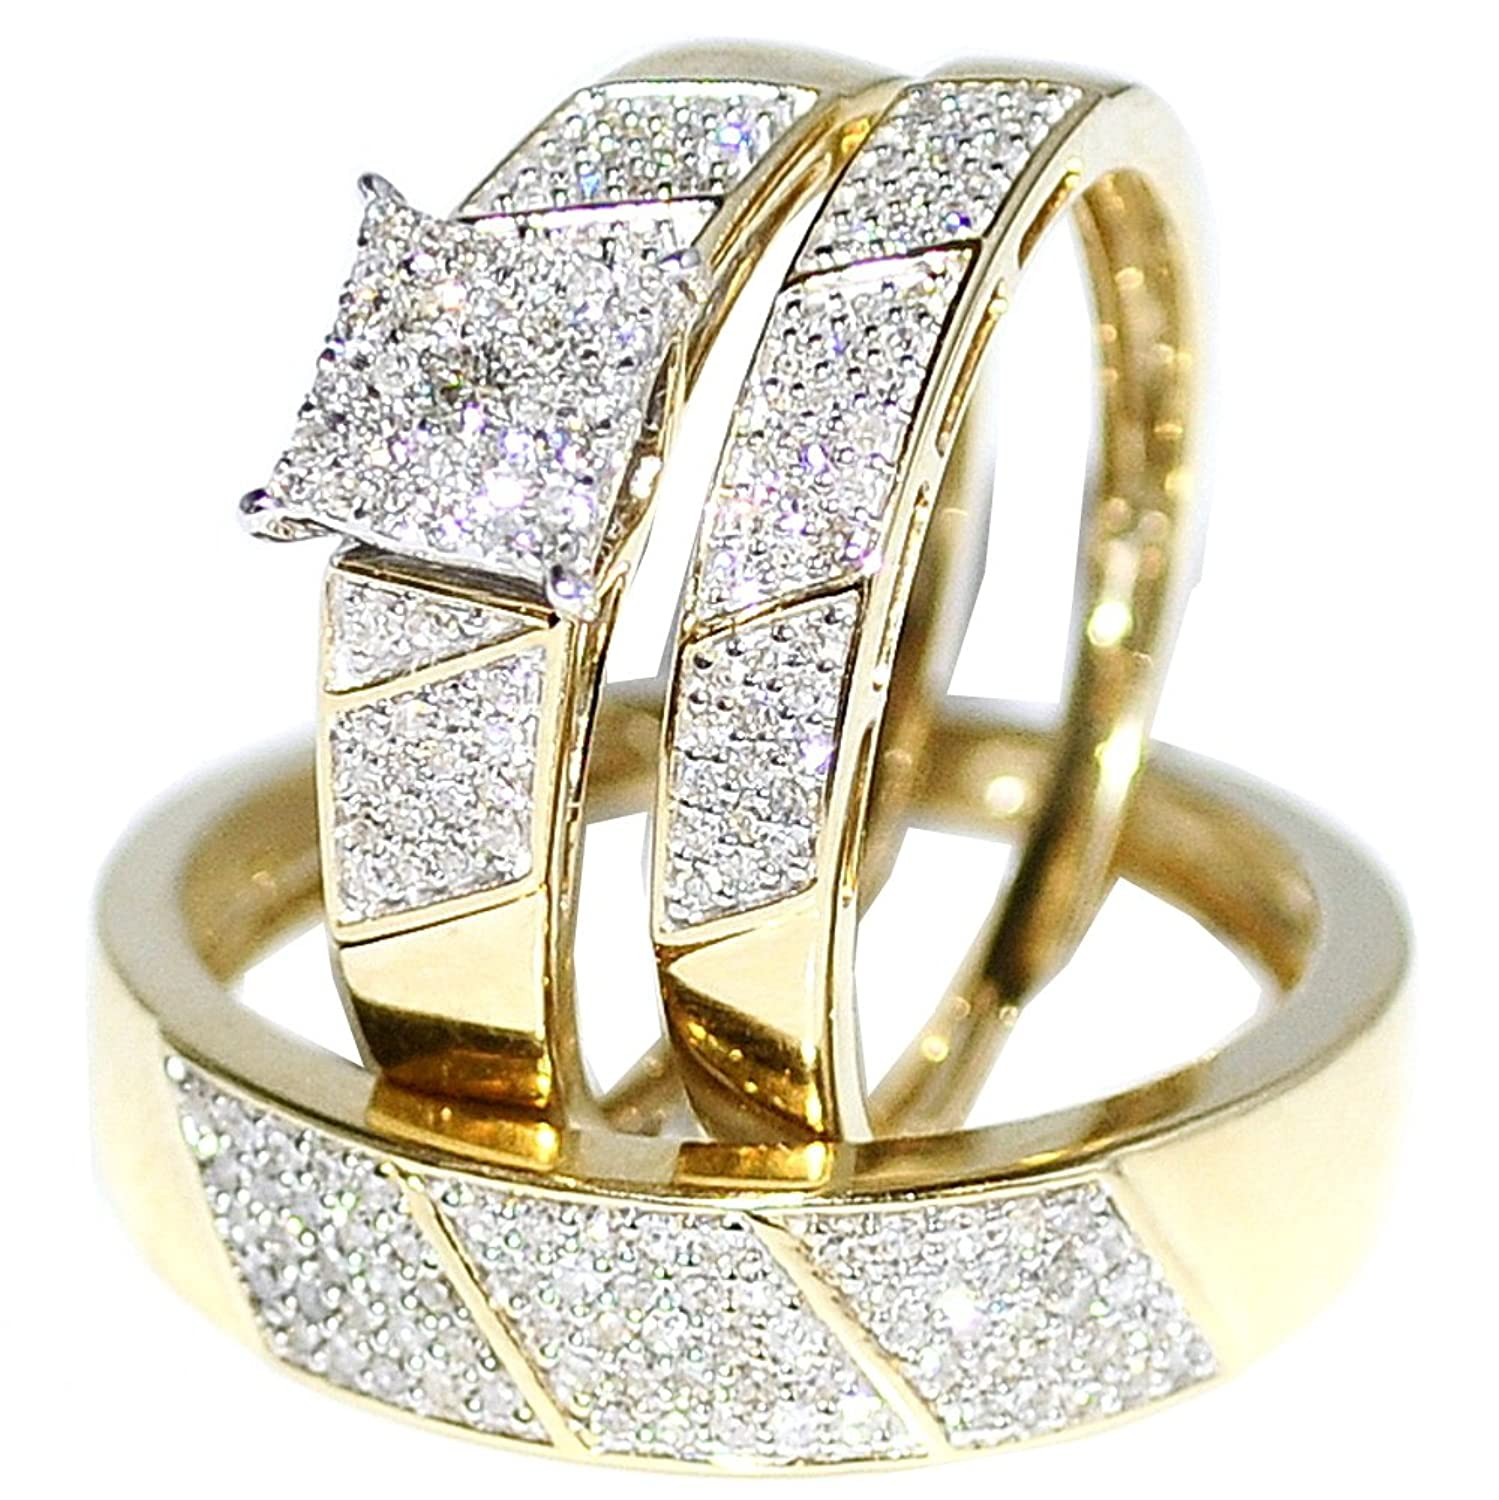 Amazon.com: His Her Wedding Rings Set Trio Men Women 10k Yellow Gold ...